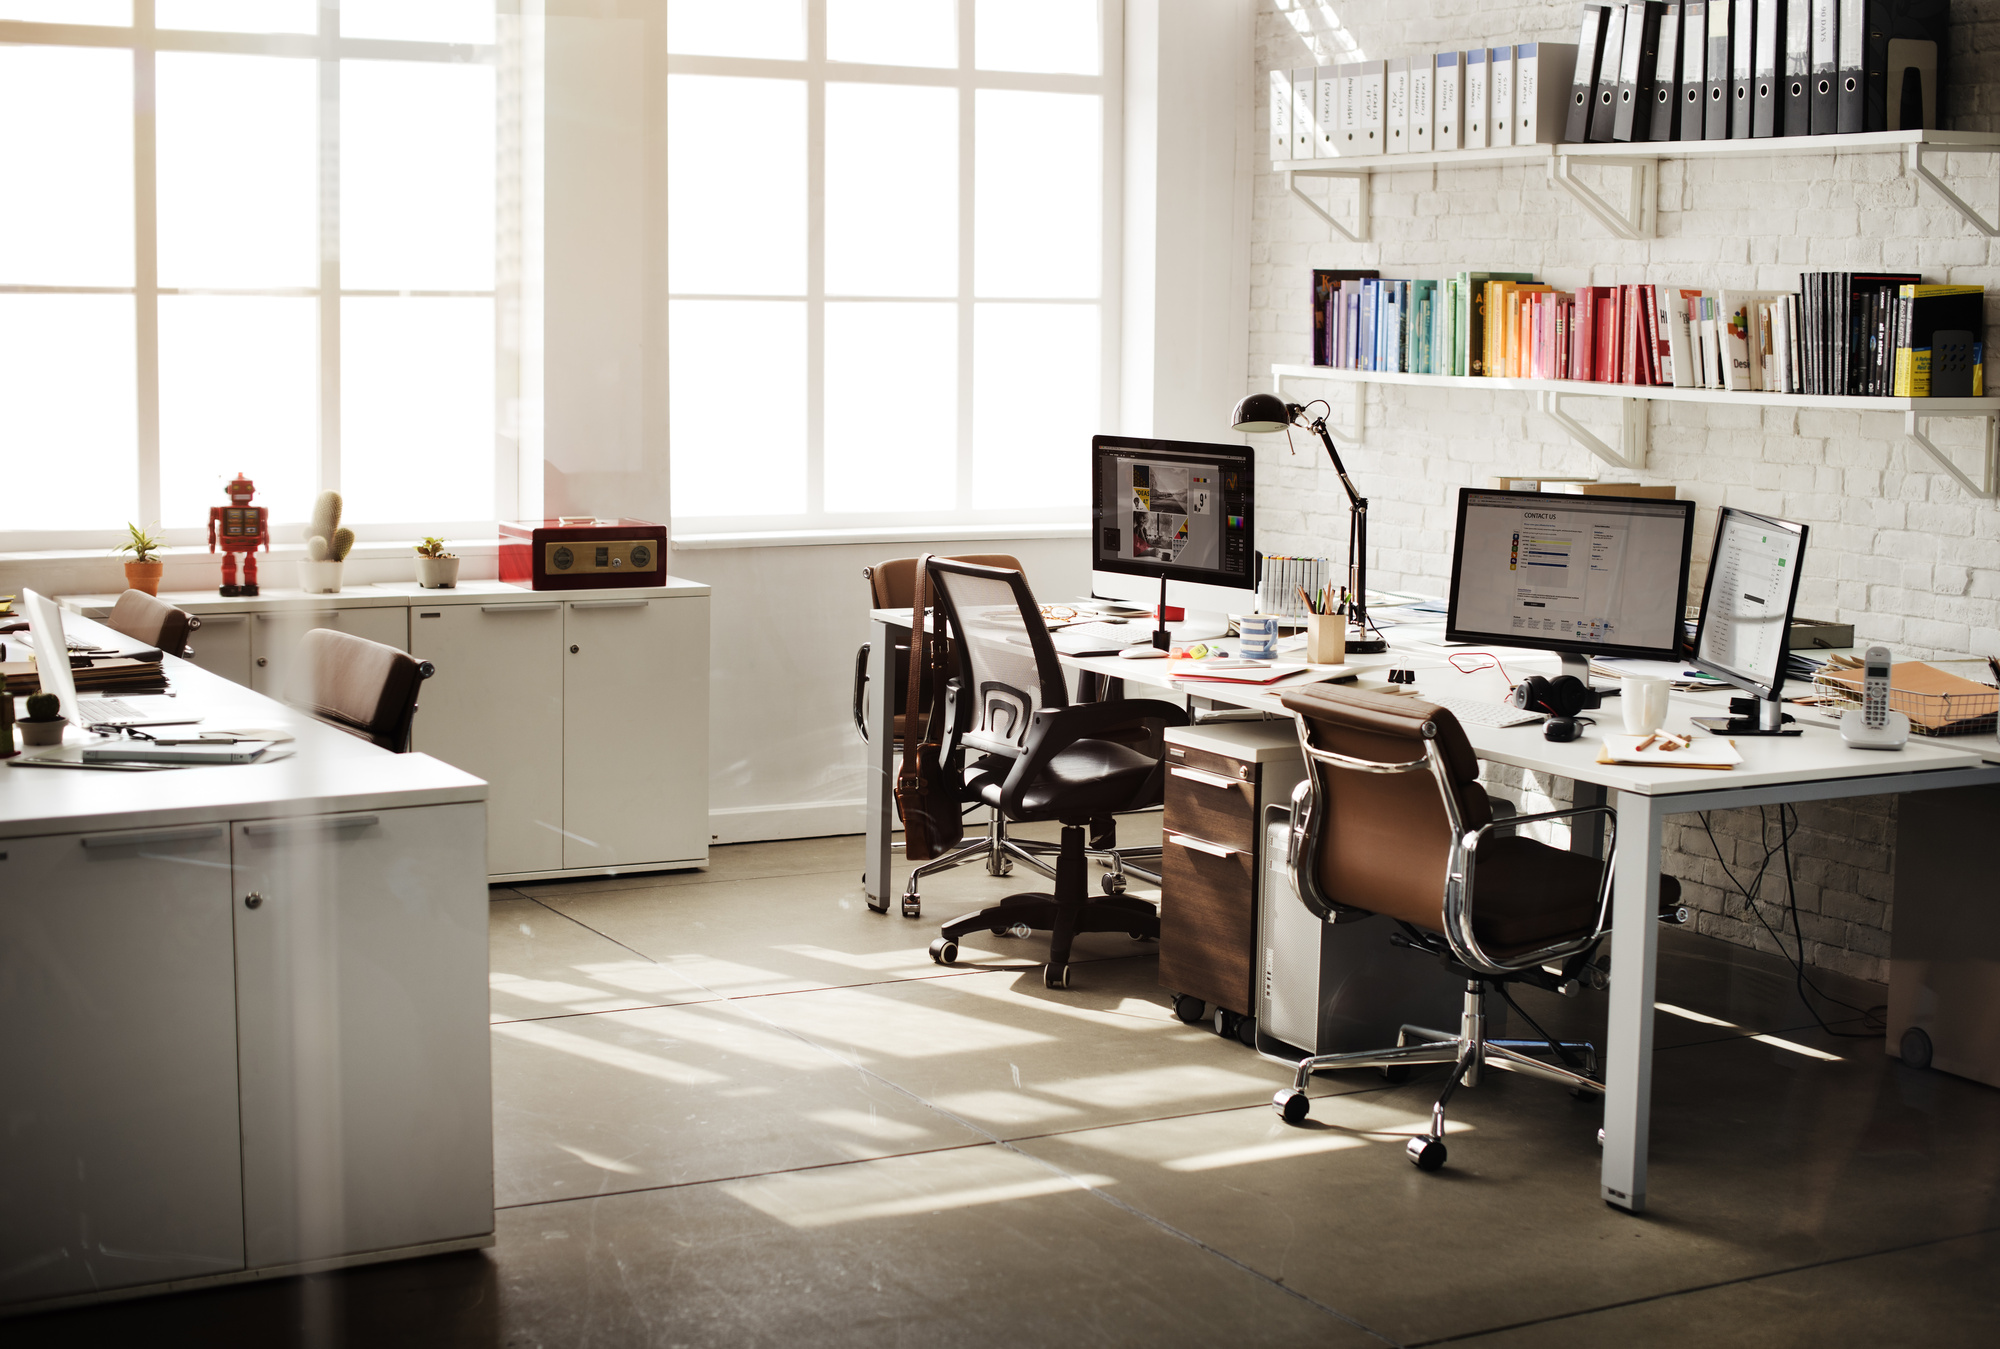 What to Look For When Renting Office Space in Tampa